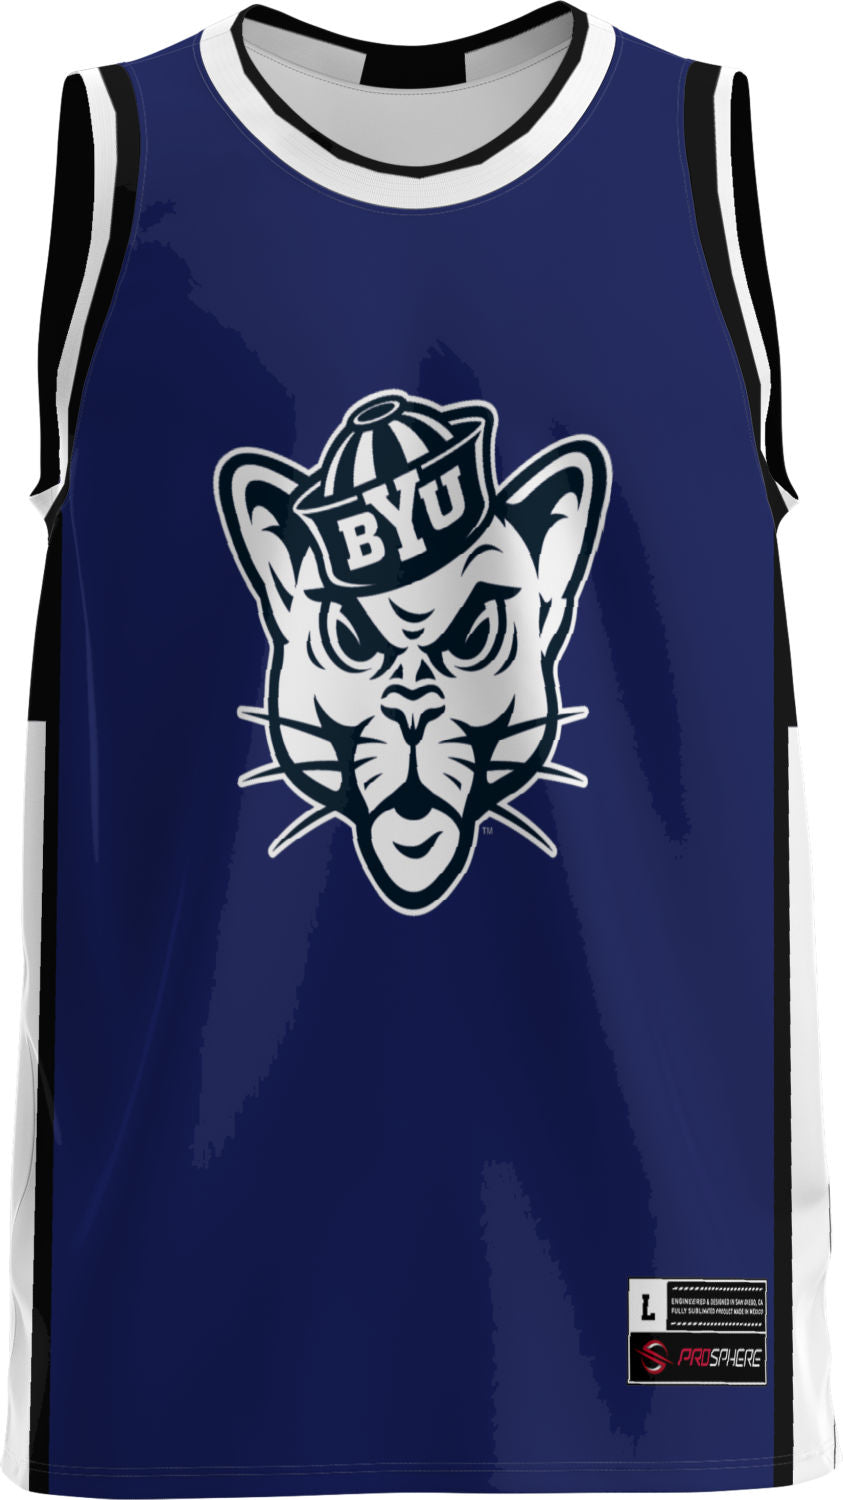 Brigham Young University: Youth Replica Basketball Fan Jersey - Modern